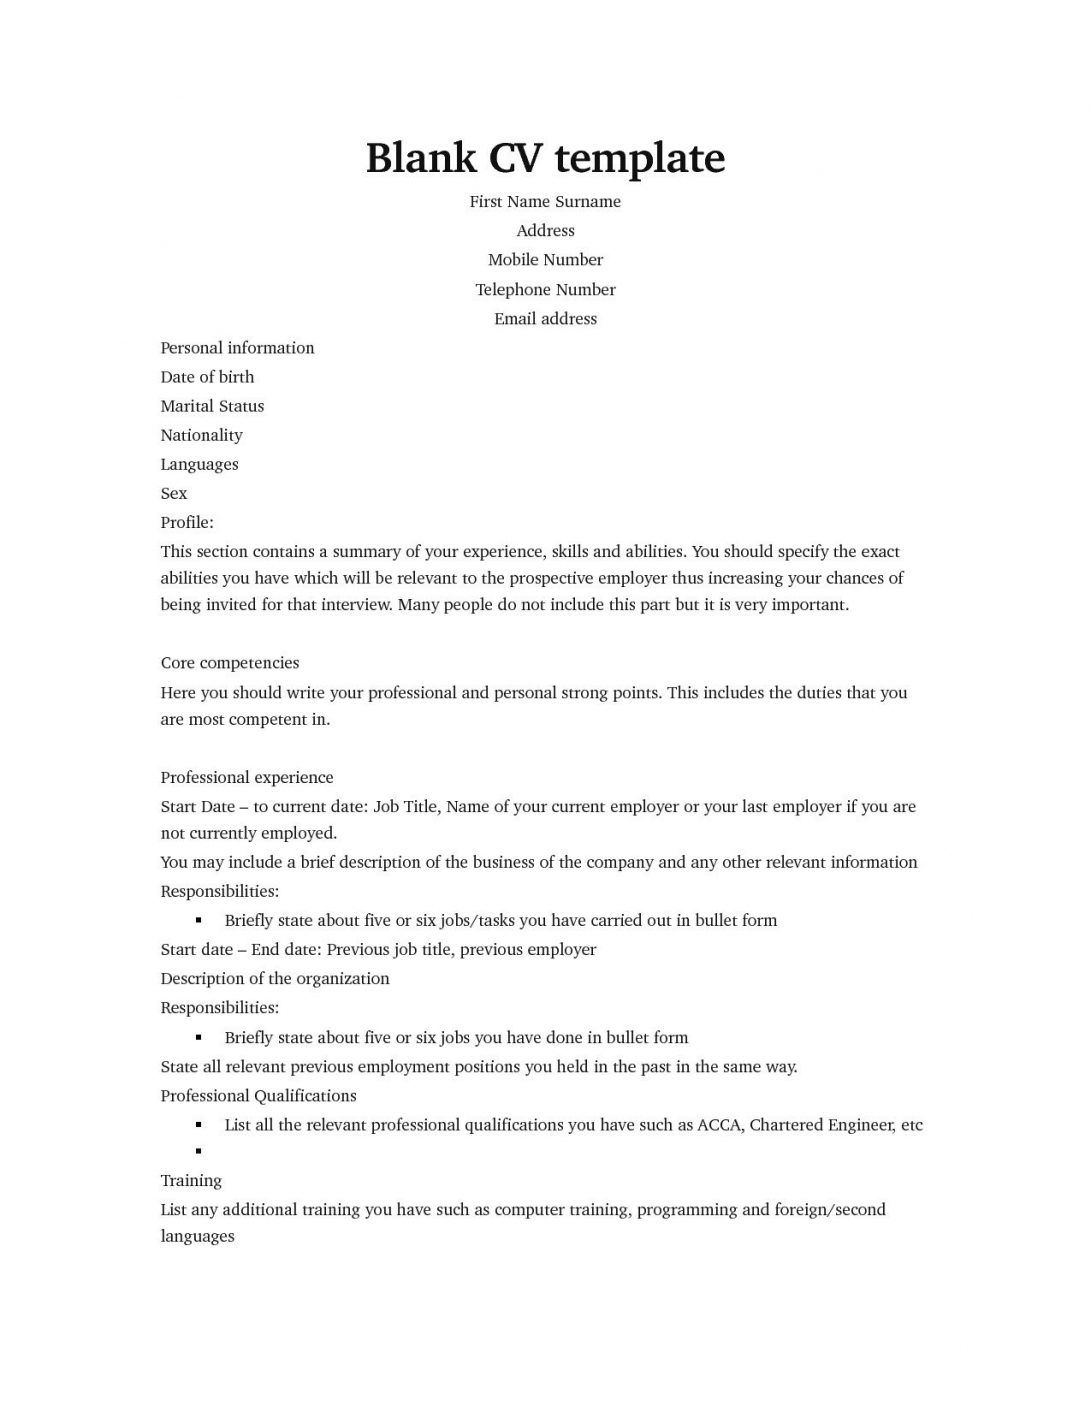 Blank Cv Template Pinfree Resume Templates Sample Intended For